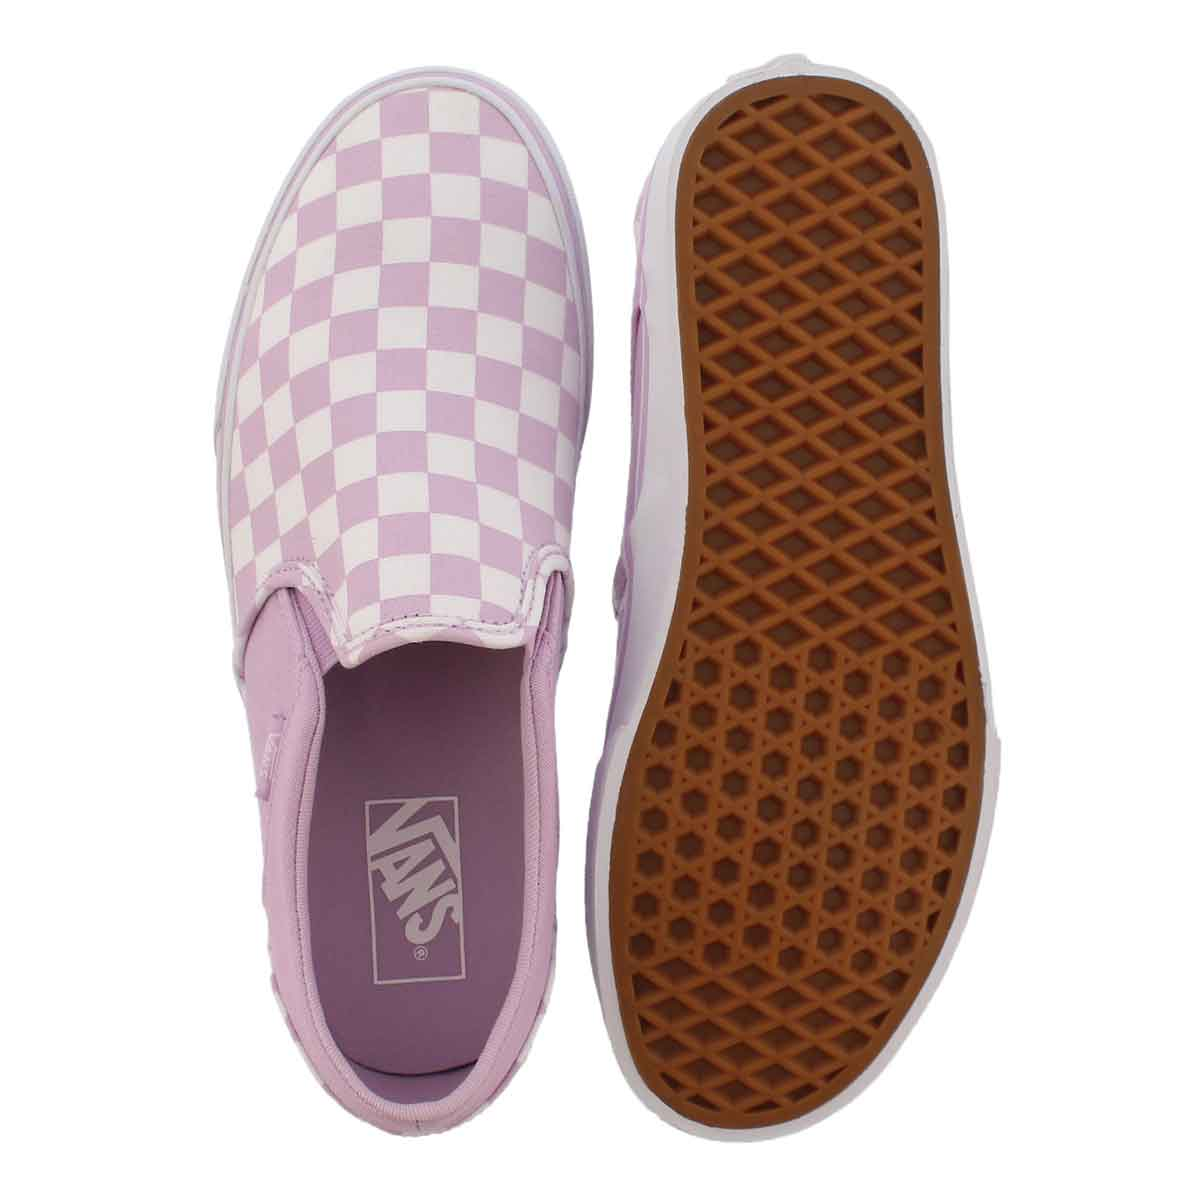 Lds Asher lilac/wht checkered slip on